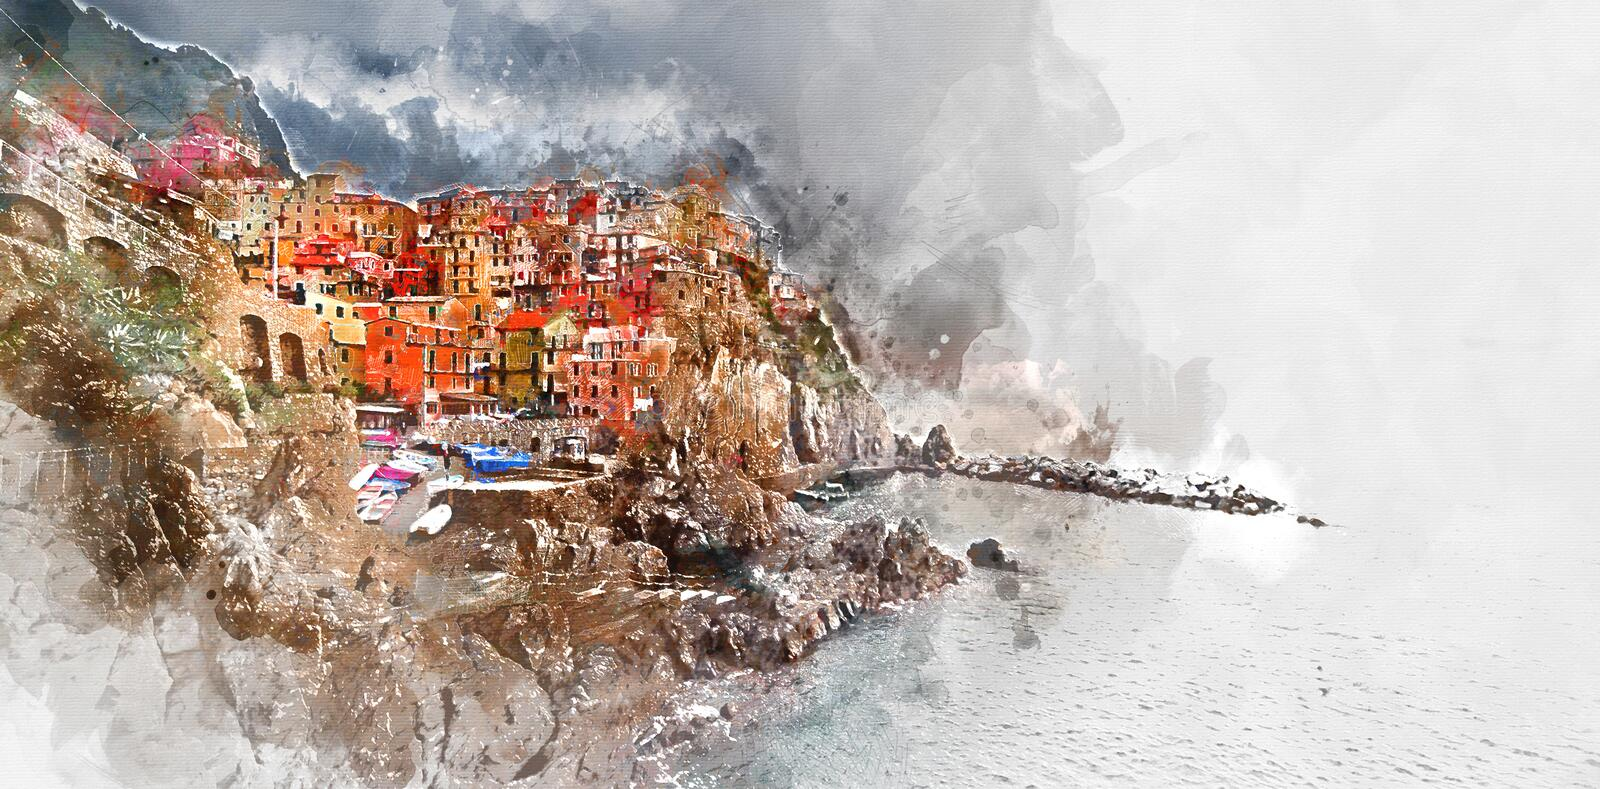 Pittura dell'acquerello di Digital di Manarola L'Italia illustrazione vettoriale